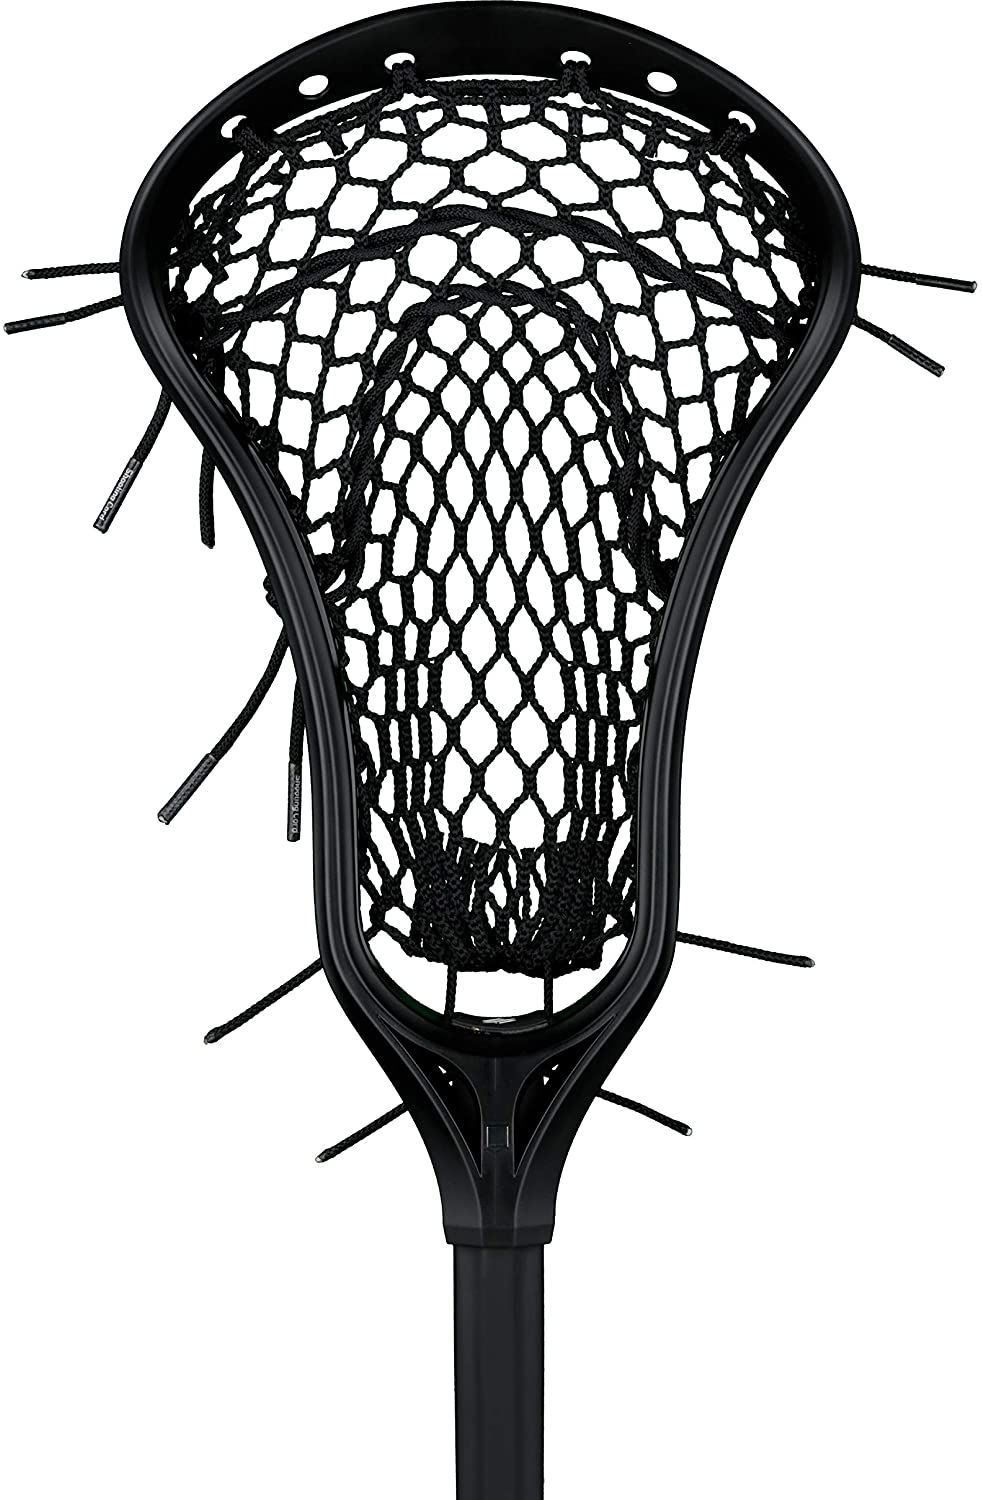 StringKing Girl's Complete Junior Youth Lacrosse Stick with Alloy Shaft and Women's Type 4 Mesh (Assorted Colors)